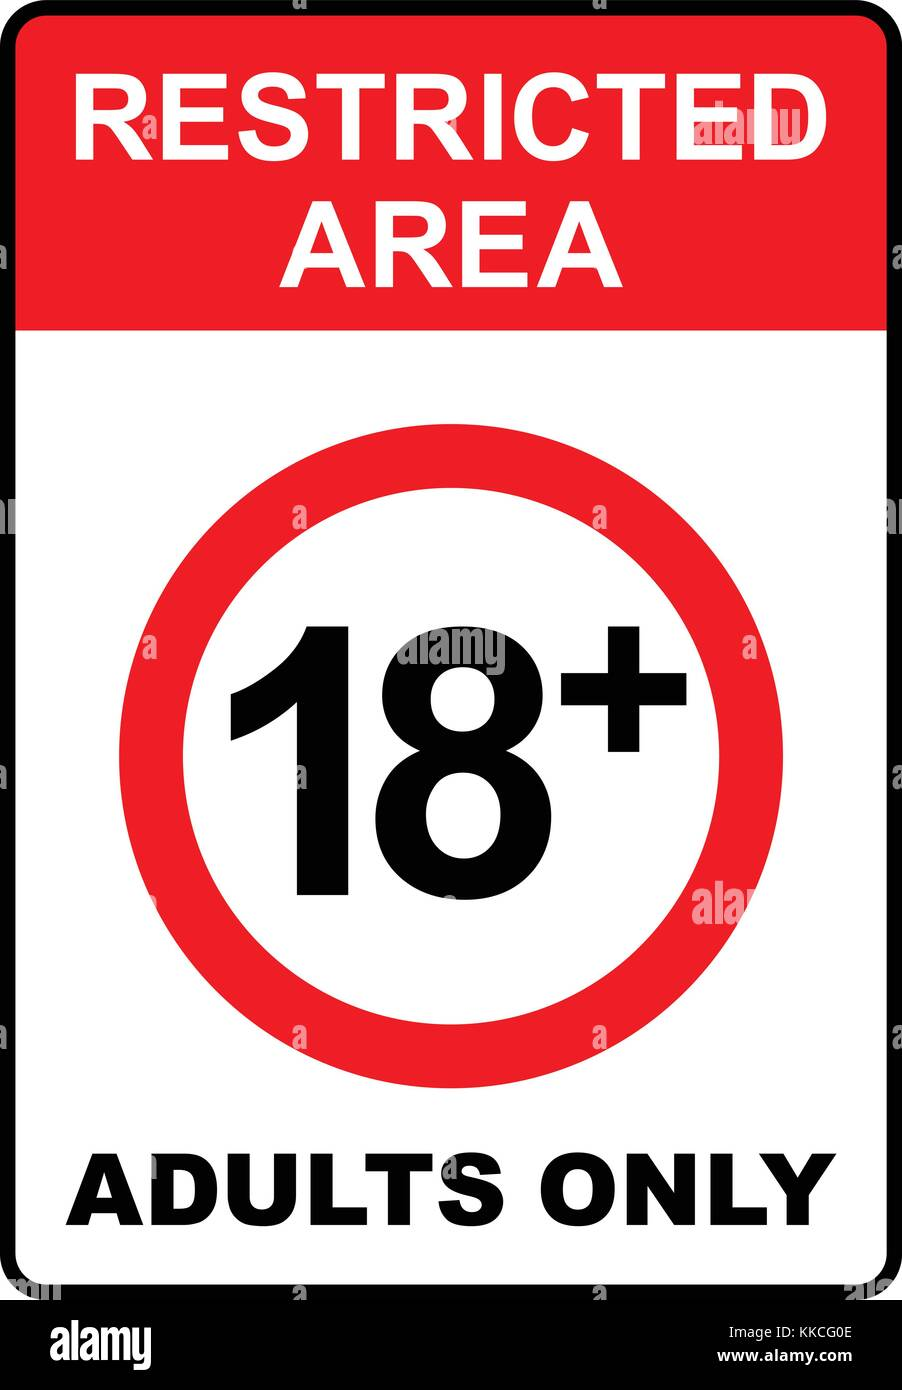 Restricted area, 18+, adults only sign, vector illustration. - Stock Vector